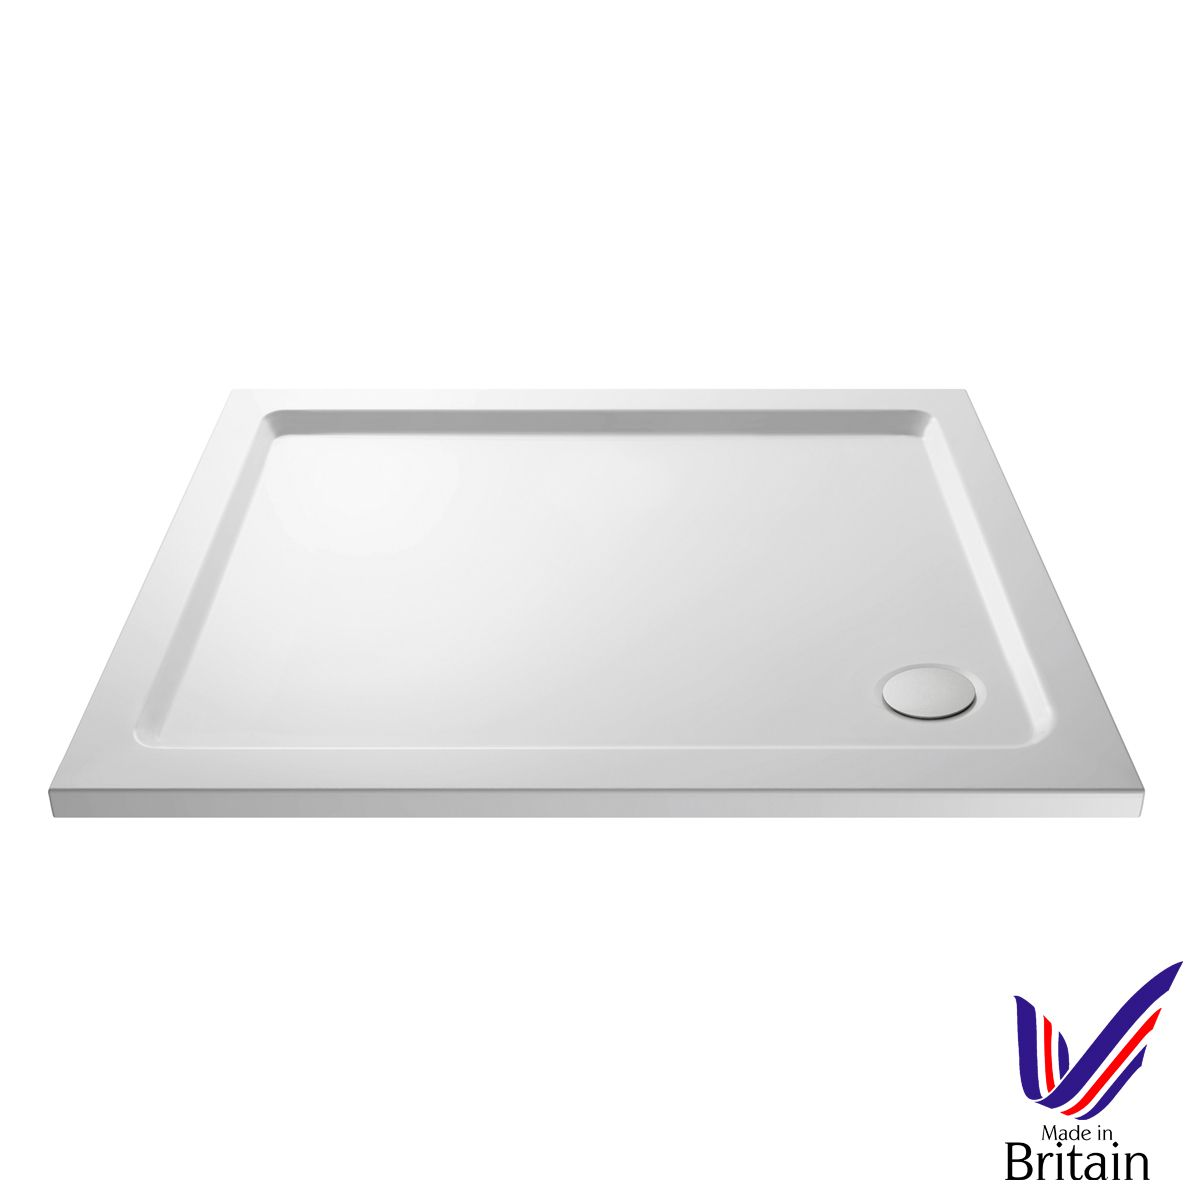 900 x 760 Shower Tray Rectangular Low Profile by Pearlstone